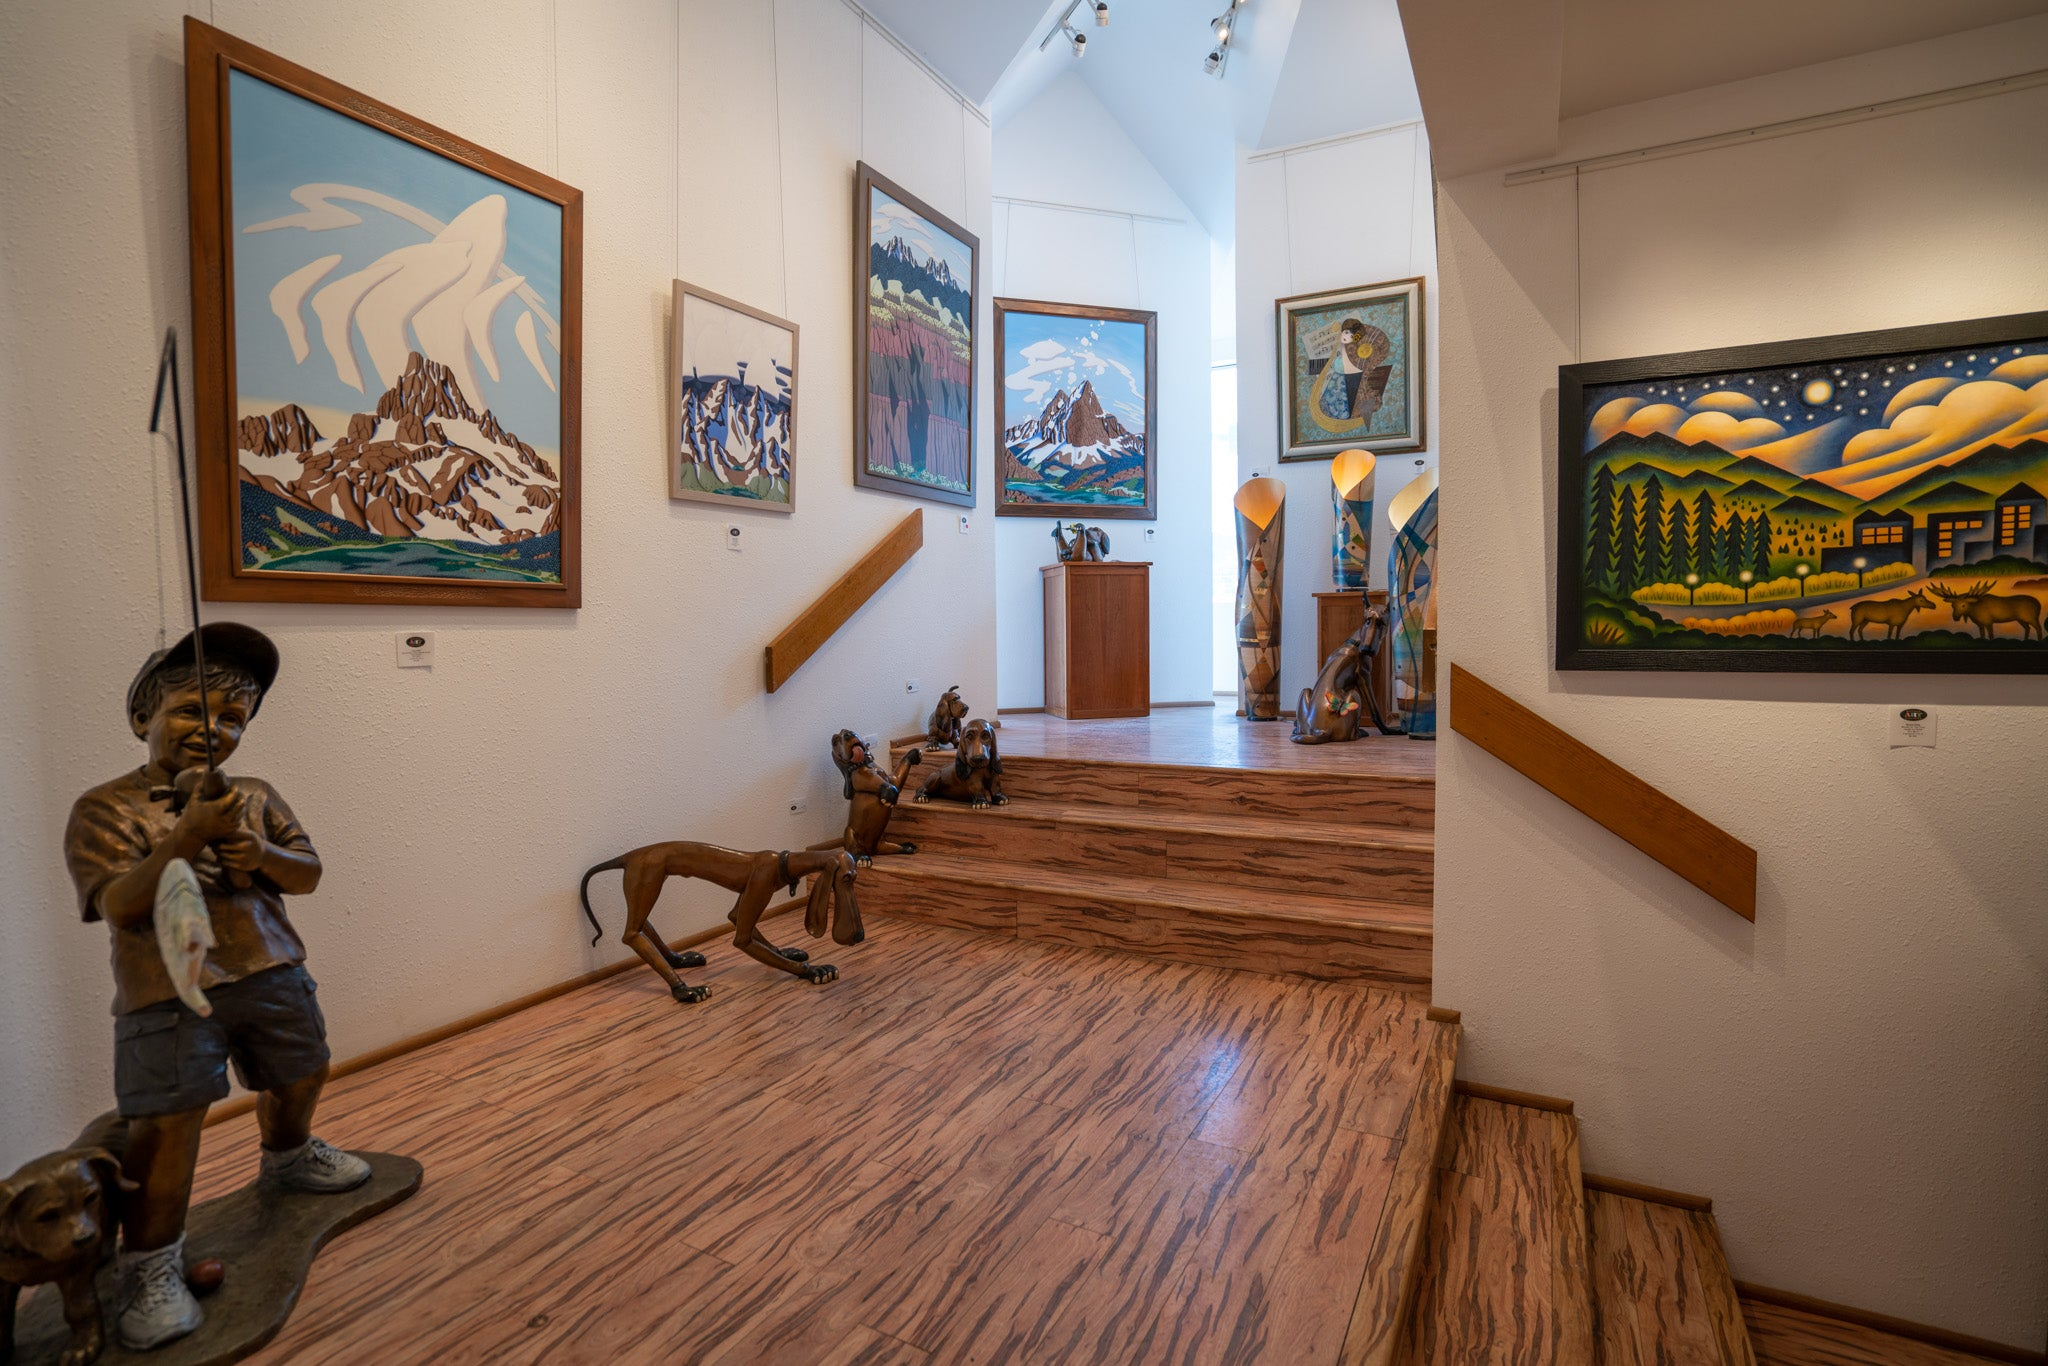 Raitman Art Galleries Breckenridge, Colorado. Featuring Original Paintings and Sculptures by Tracy Felix, Sushe Felix, Nile Jade, Cynthia Duff, Marianne Caroselli and Marty Goldstein